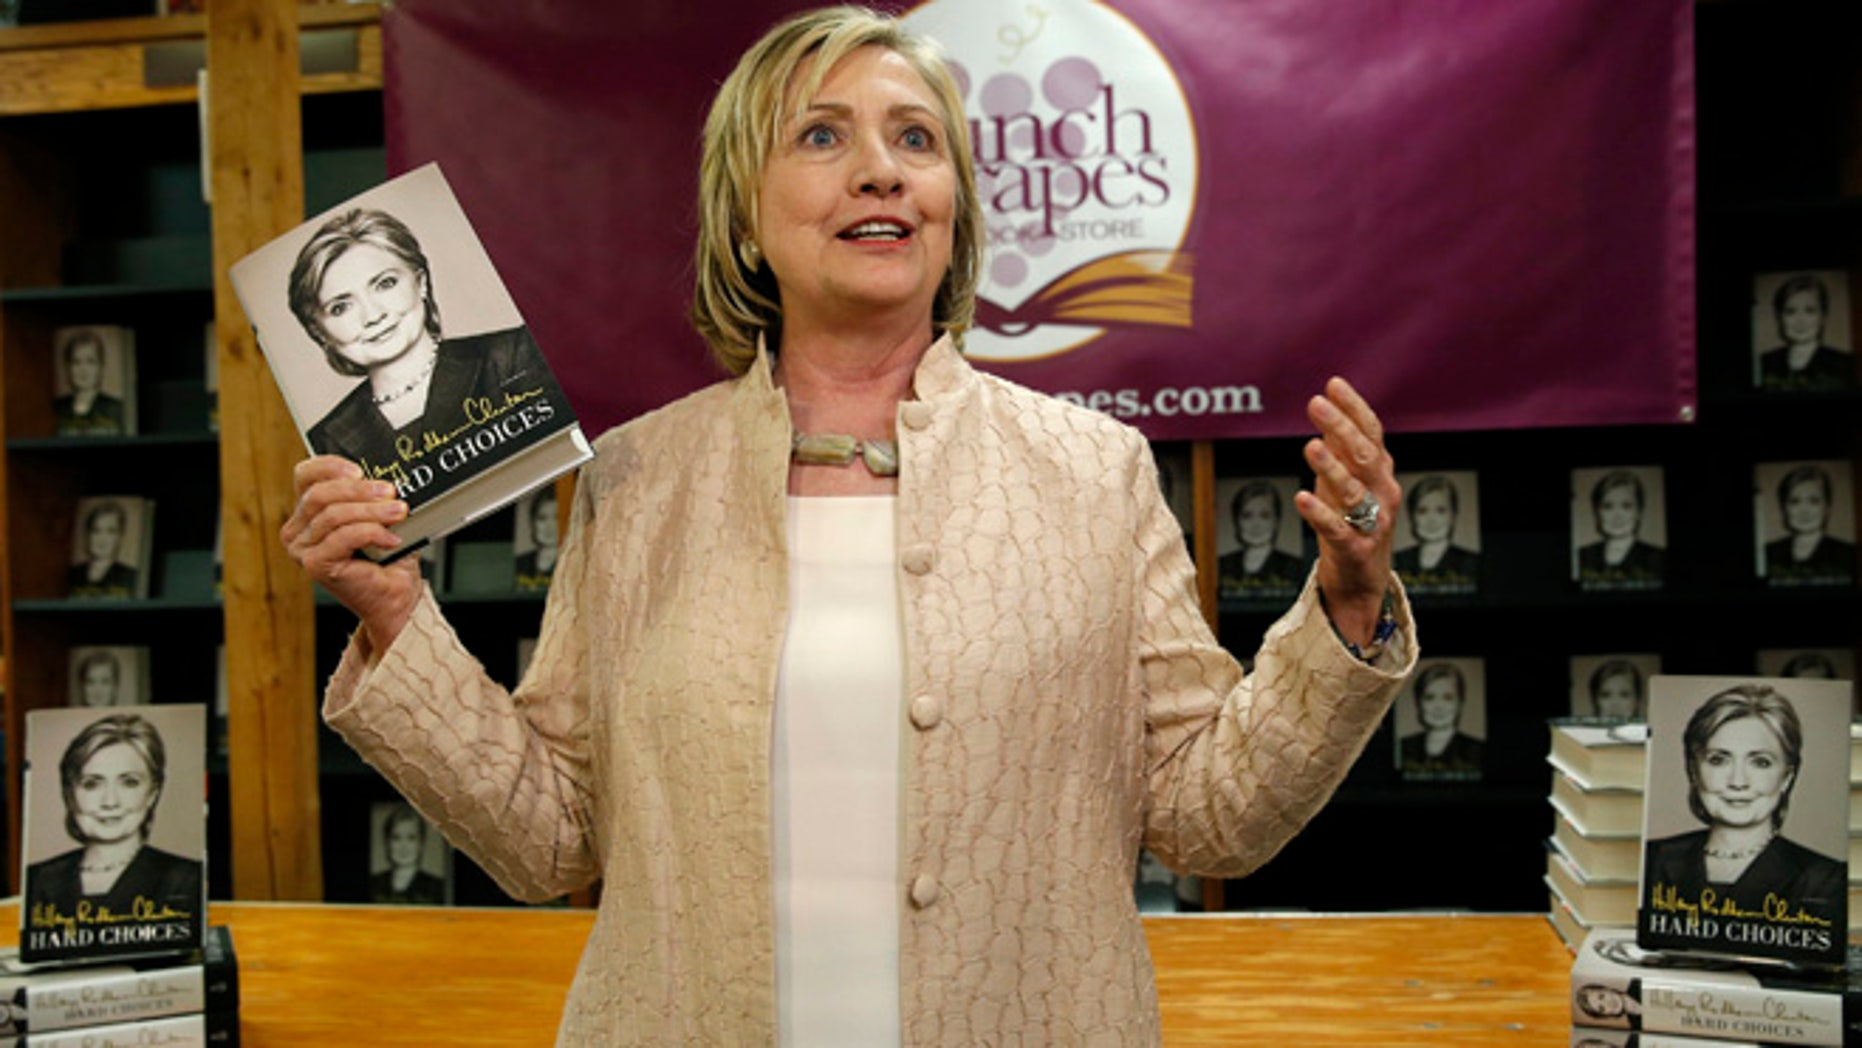 """Aug 13, 2014: Hillary Clinton arrives for a signing session for her book """"Hard Choices"""" at the Bunch of Grapes bookstore in Vineyard Haven on Martha's Vineyard, Massachusetts. (Reuters)"""